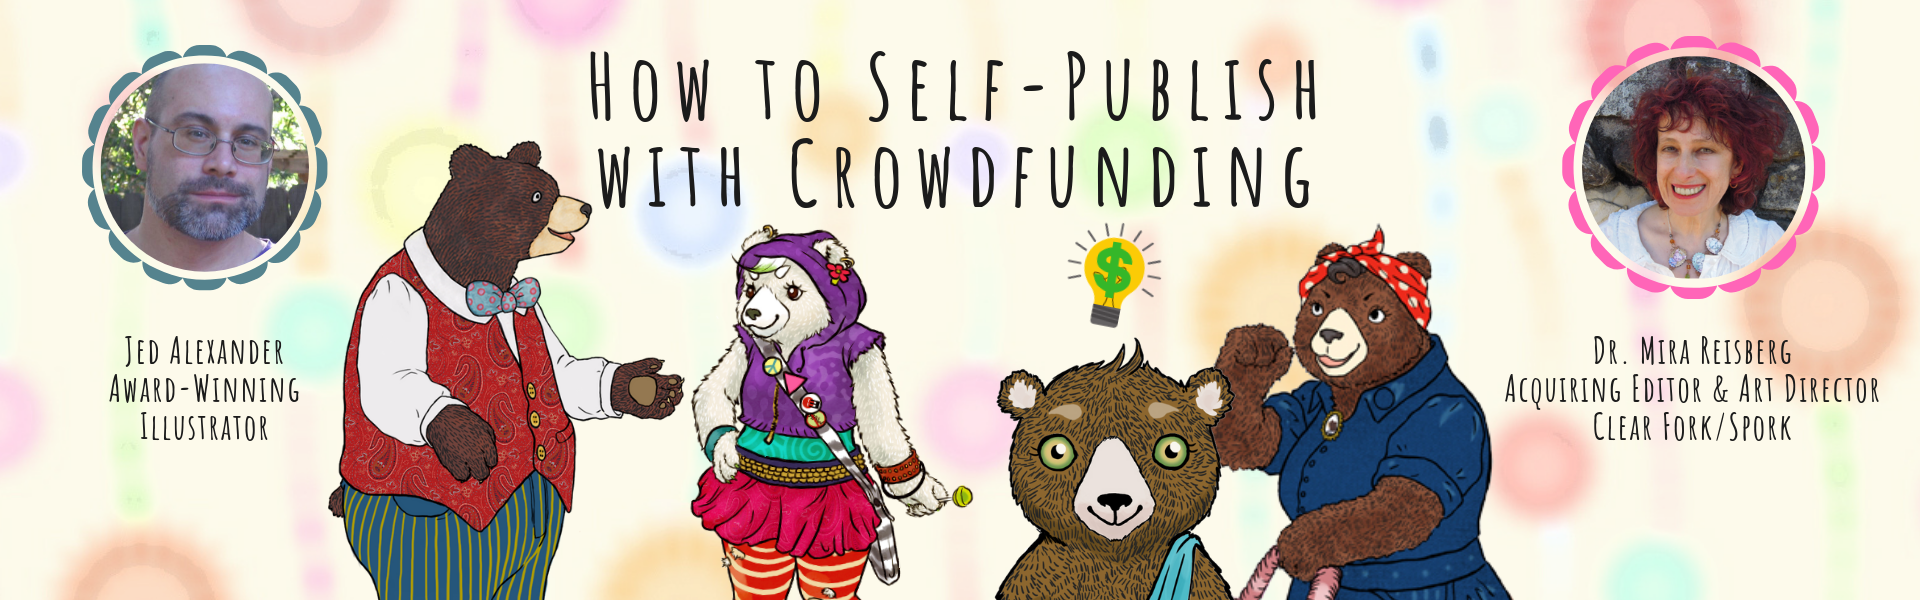 How to Self-Publishing with Crowdfunding at the Children's Book Academy with Jed Alexander